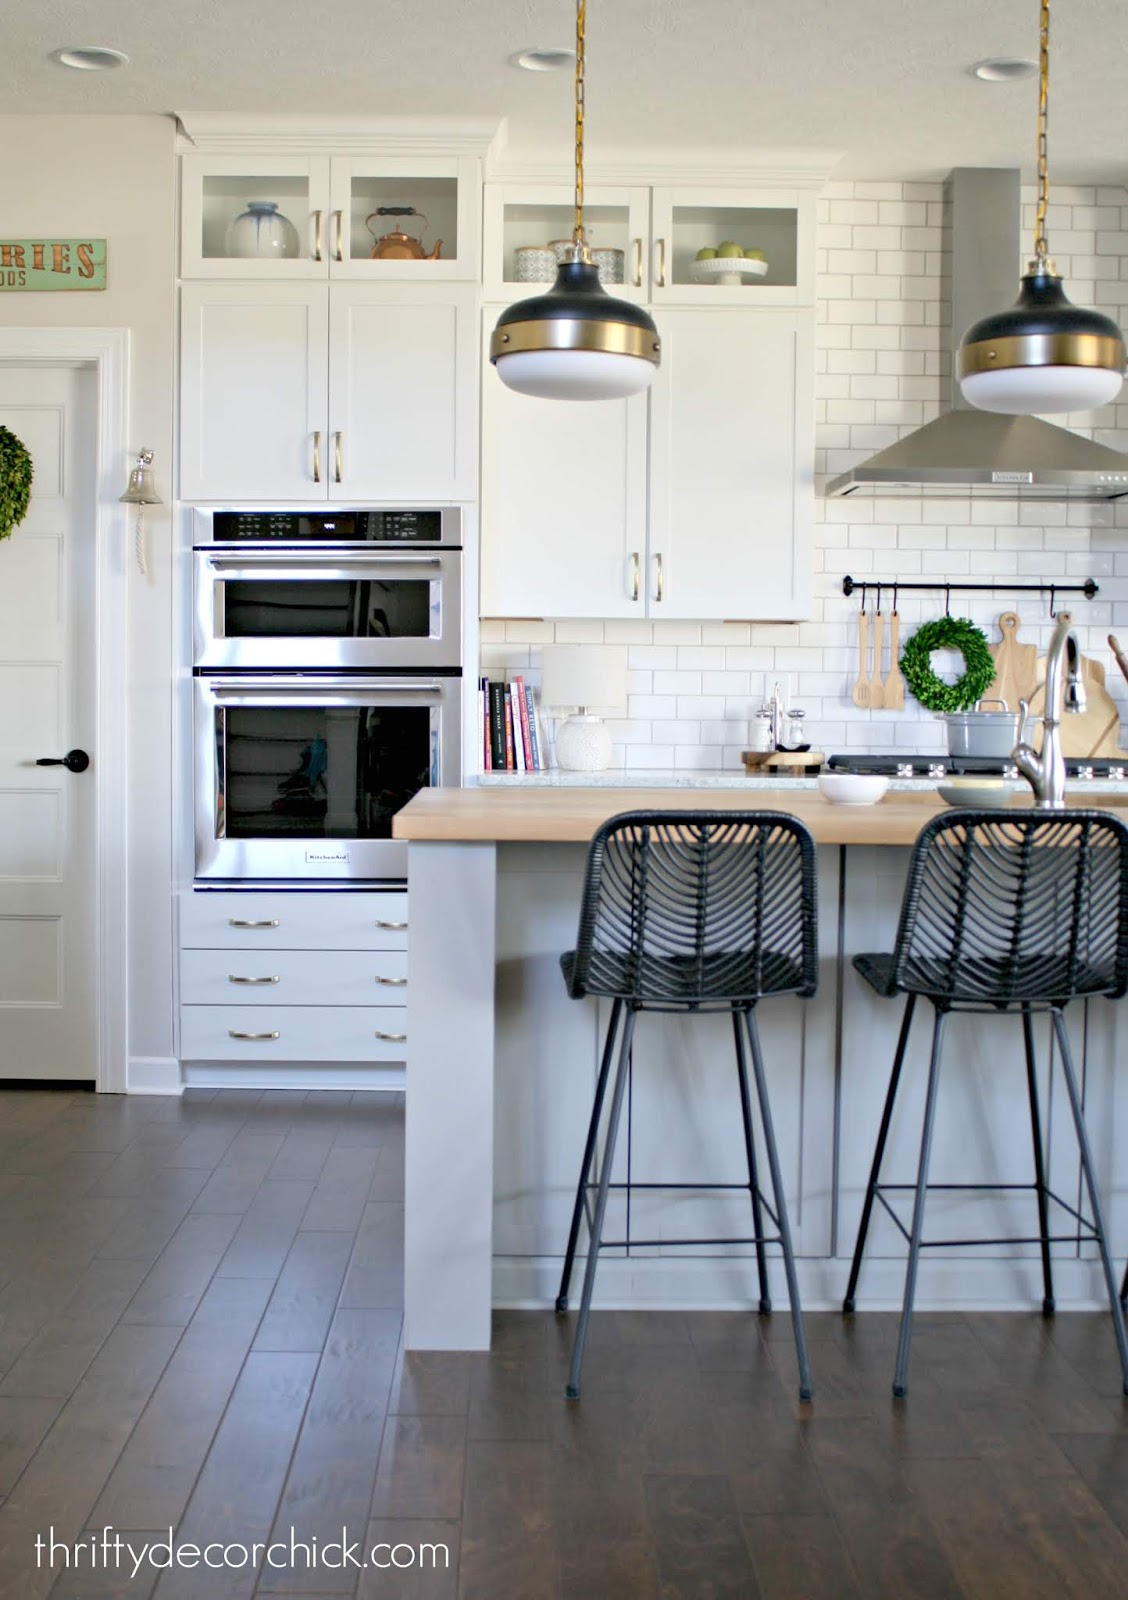 How I added sides and legs to my kitchen island